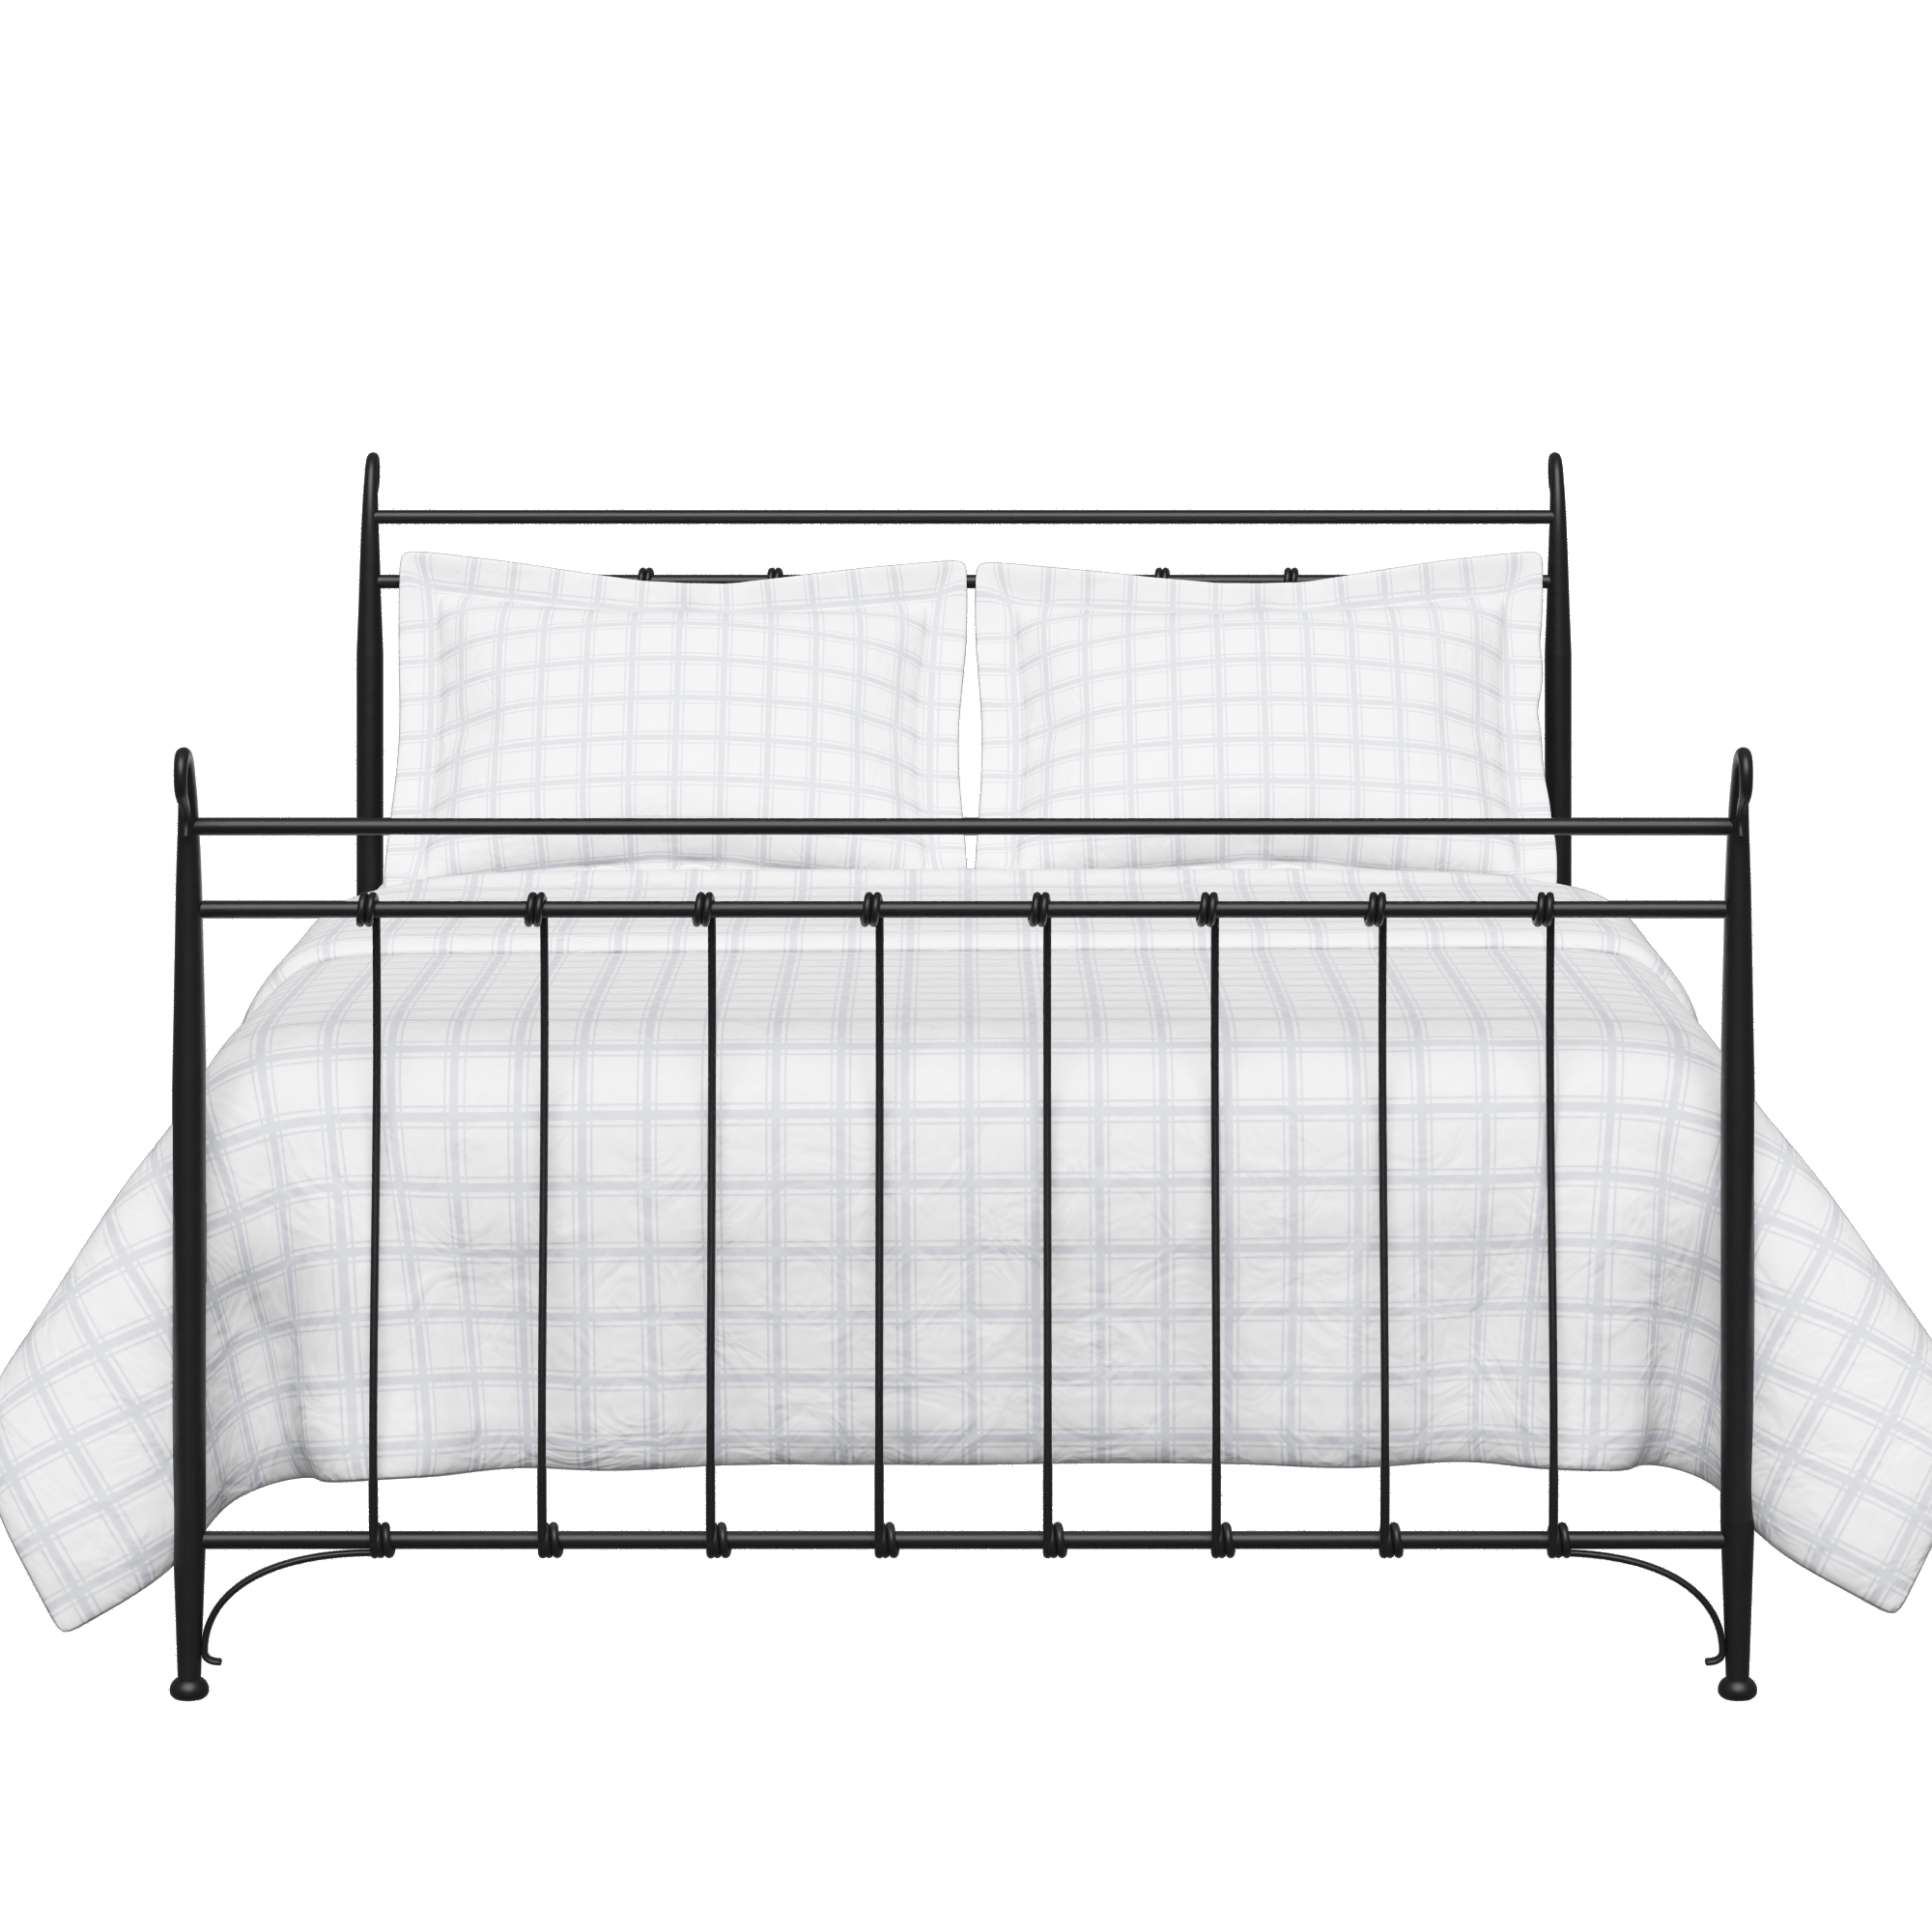 Tiffany iron/metal bed in black